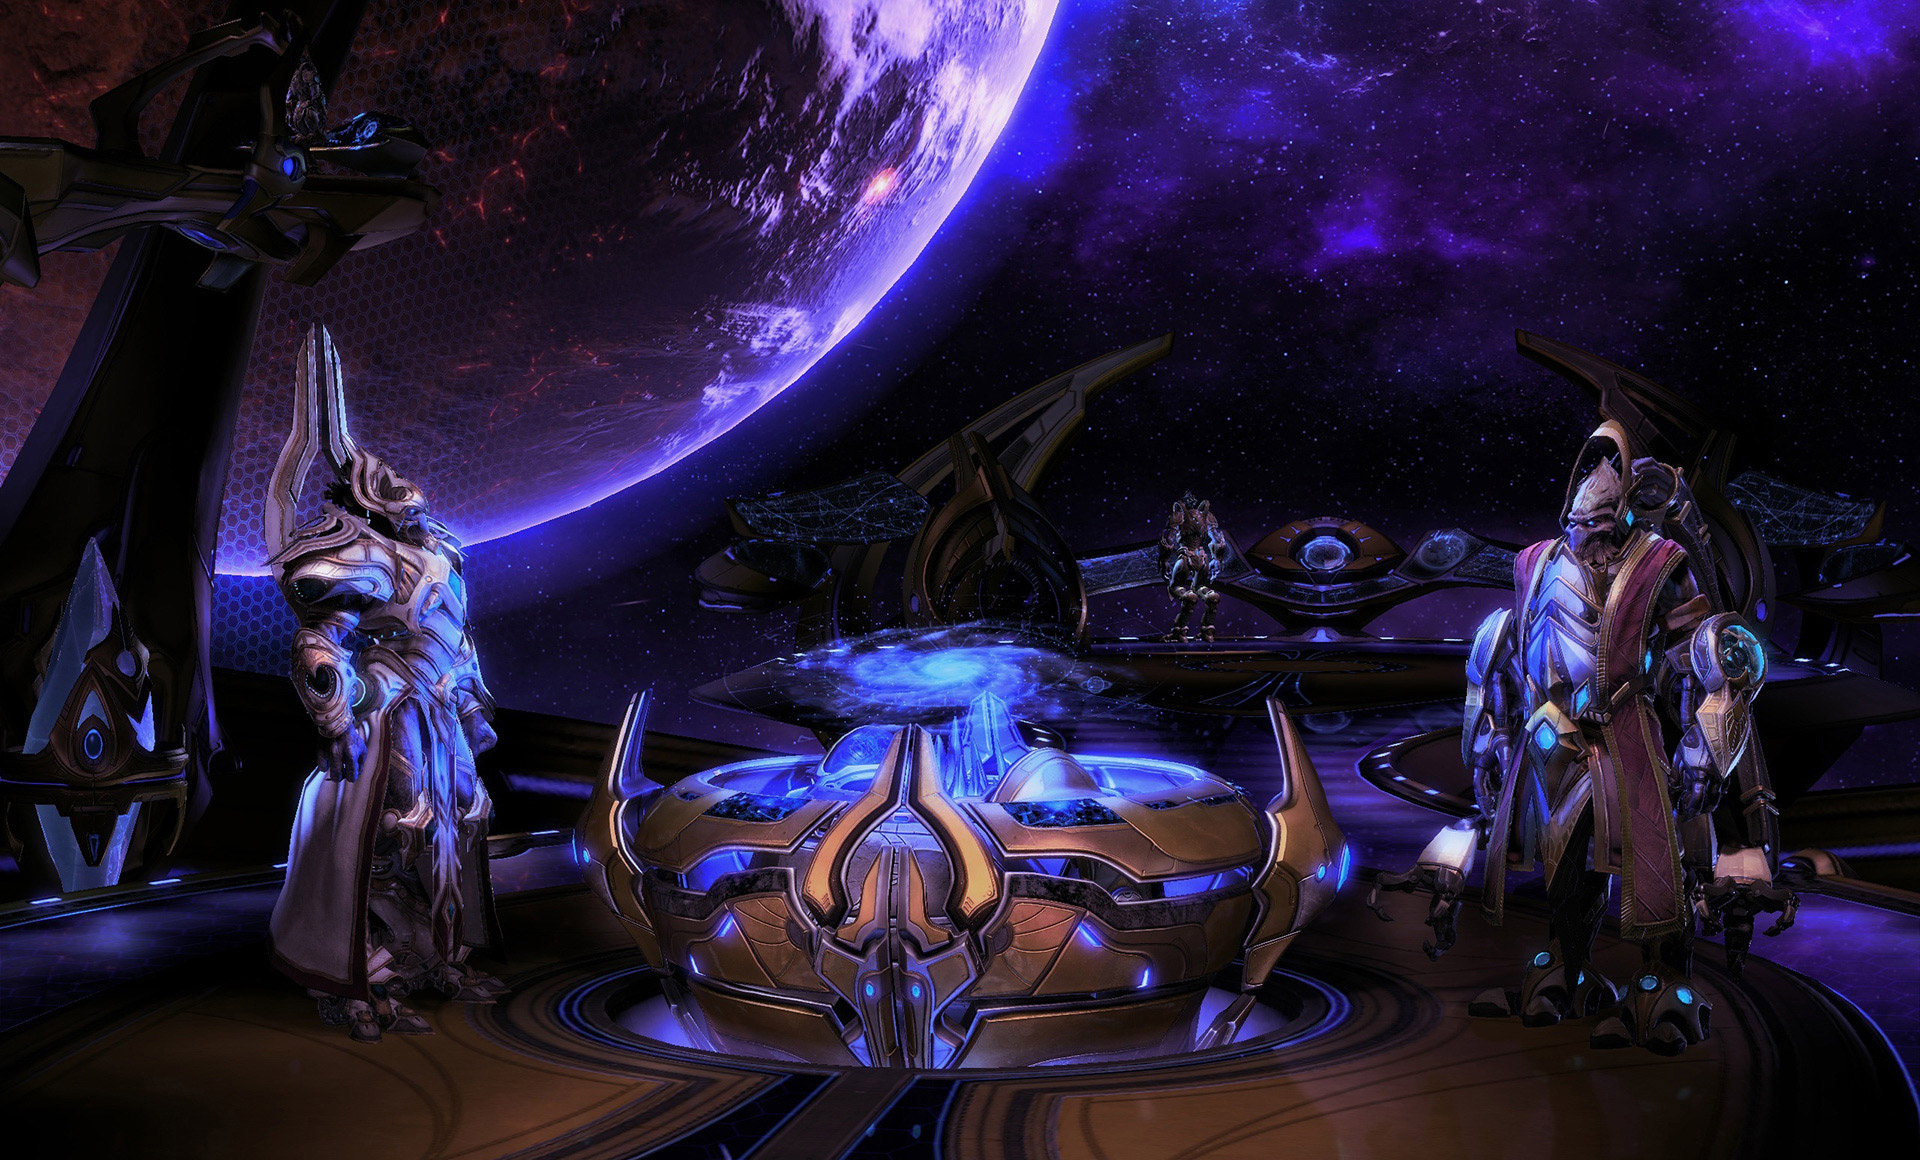 Starcraft II: Legacy of the Void image 1